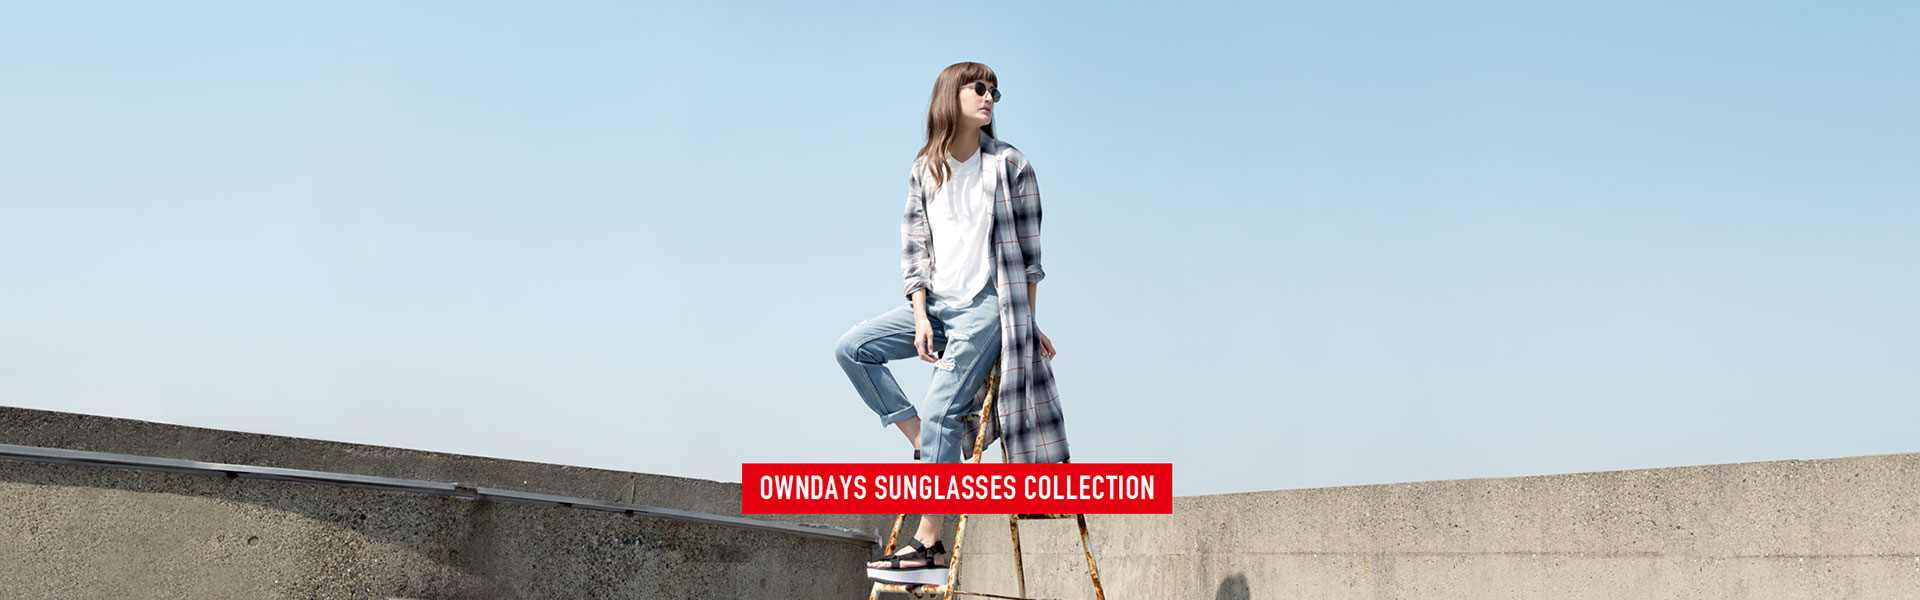 OWNDAYS SUNGLASSES COLLECTION - Mid 2015